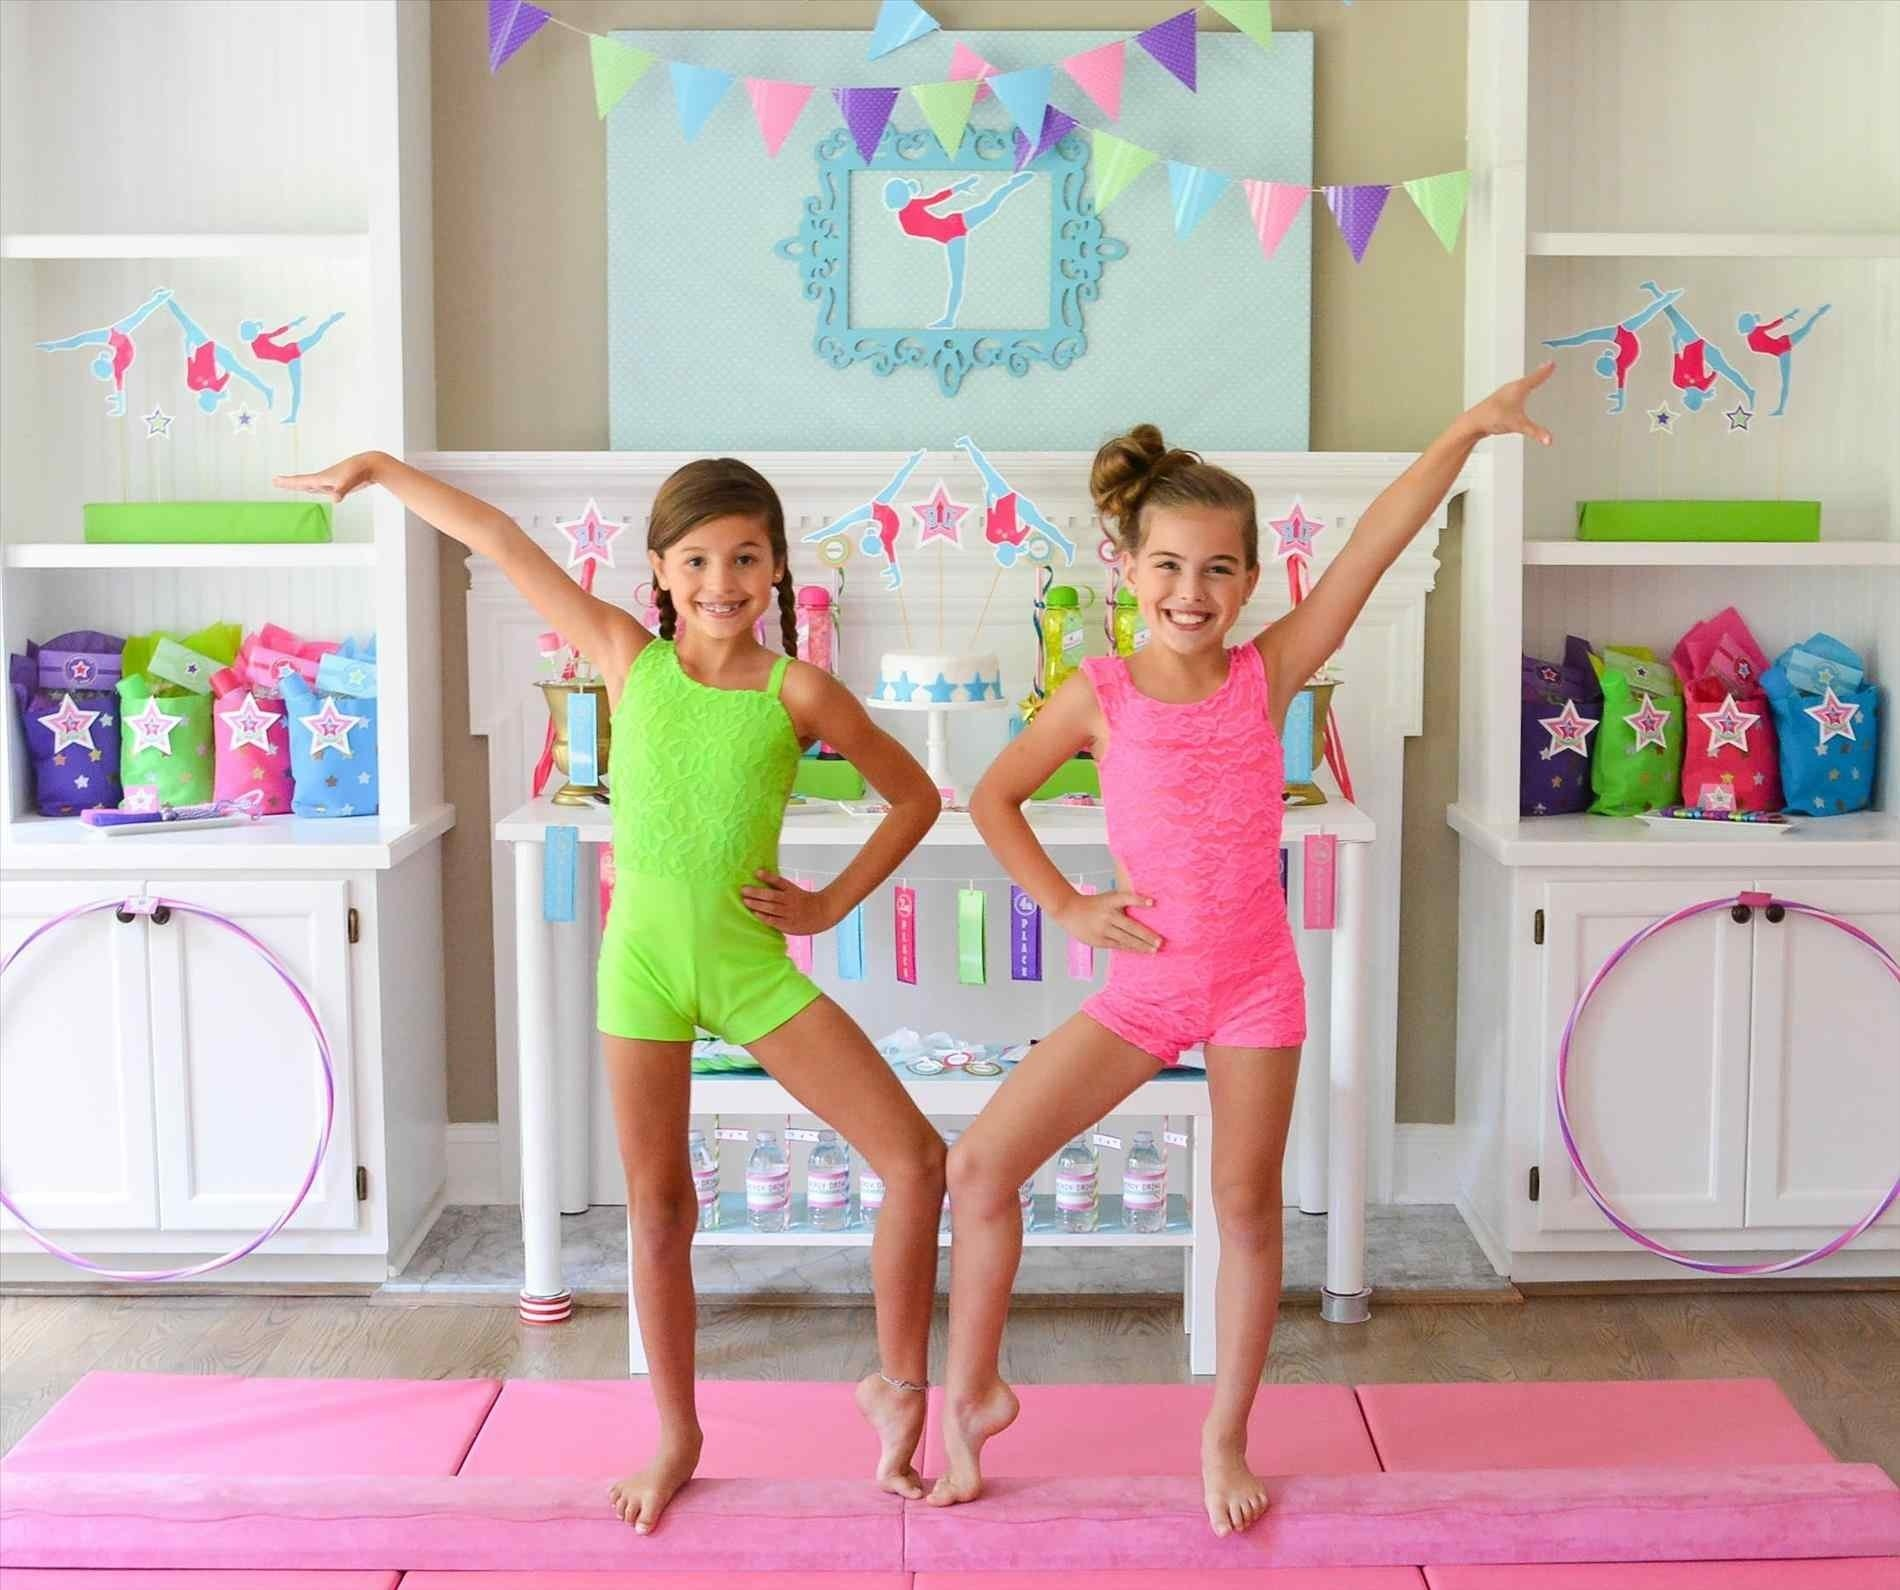 10 Fantastic Birthday Party Ideas For 11 Year Old Girl Nobby Bedroom At Spa